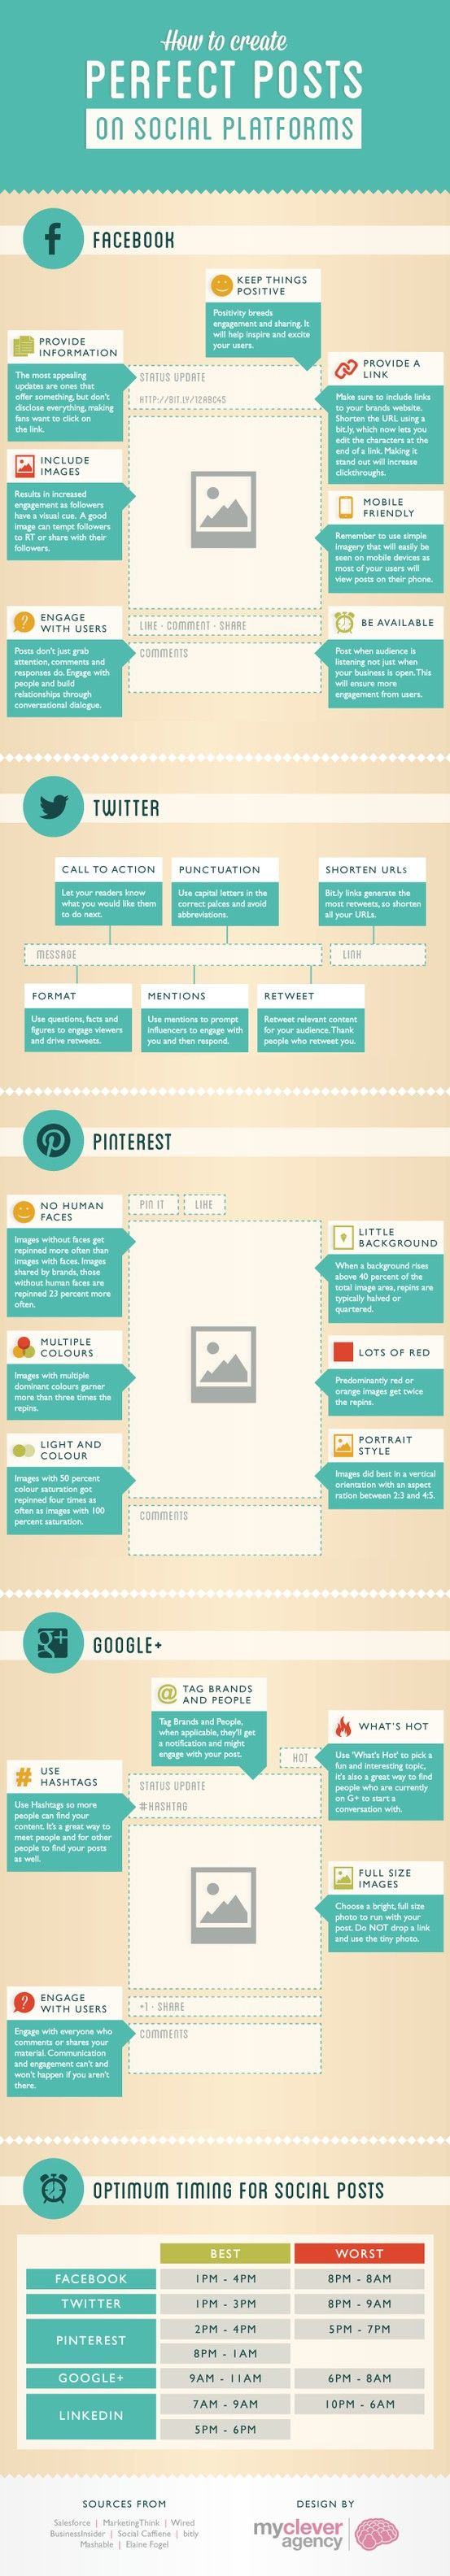 How to create perfect post on Social Platforms